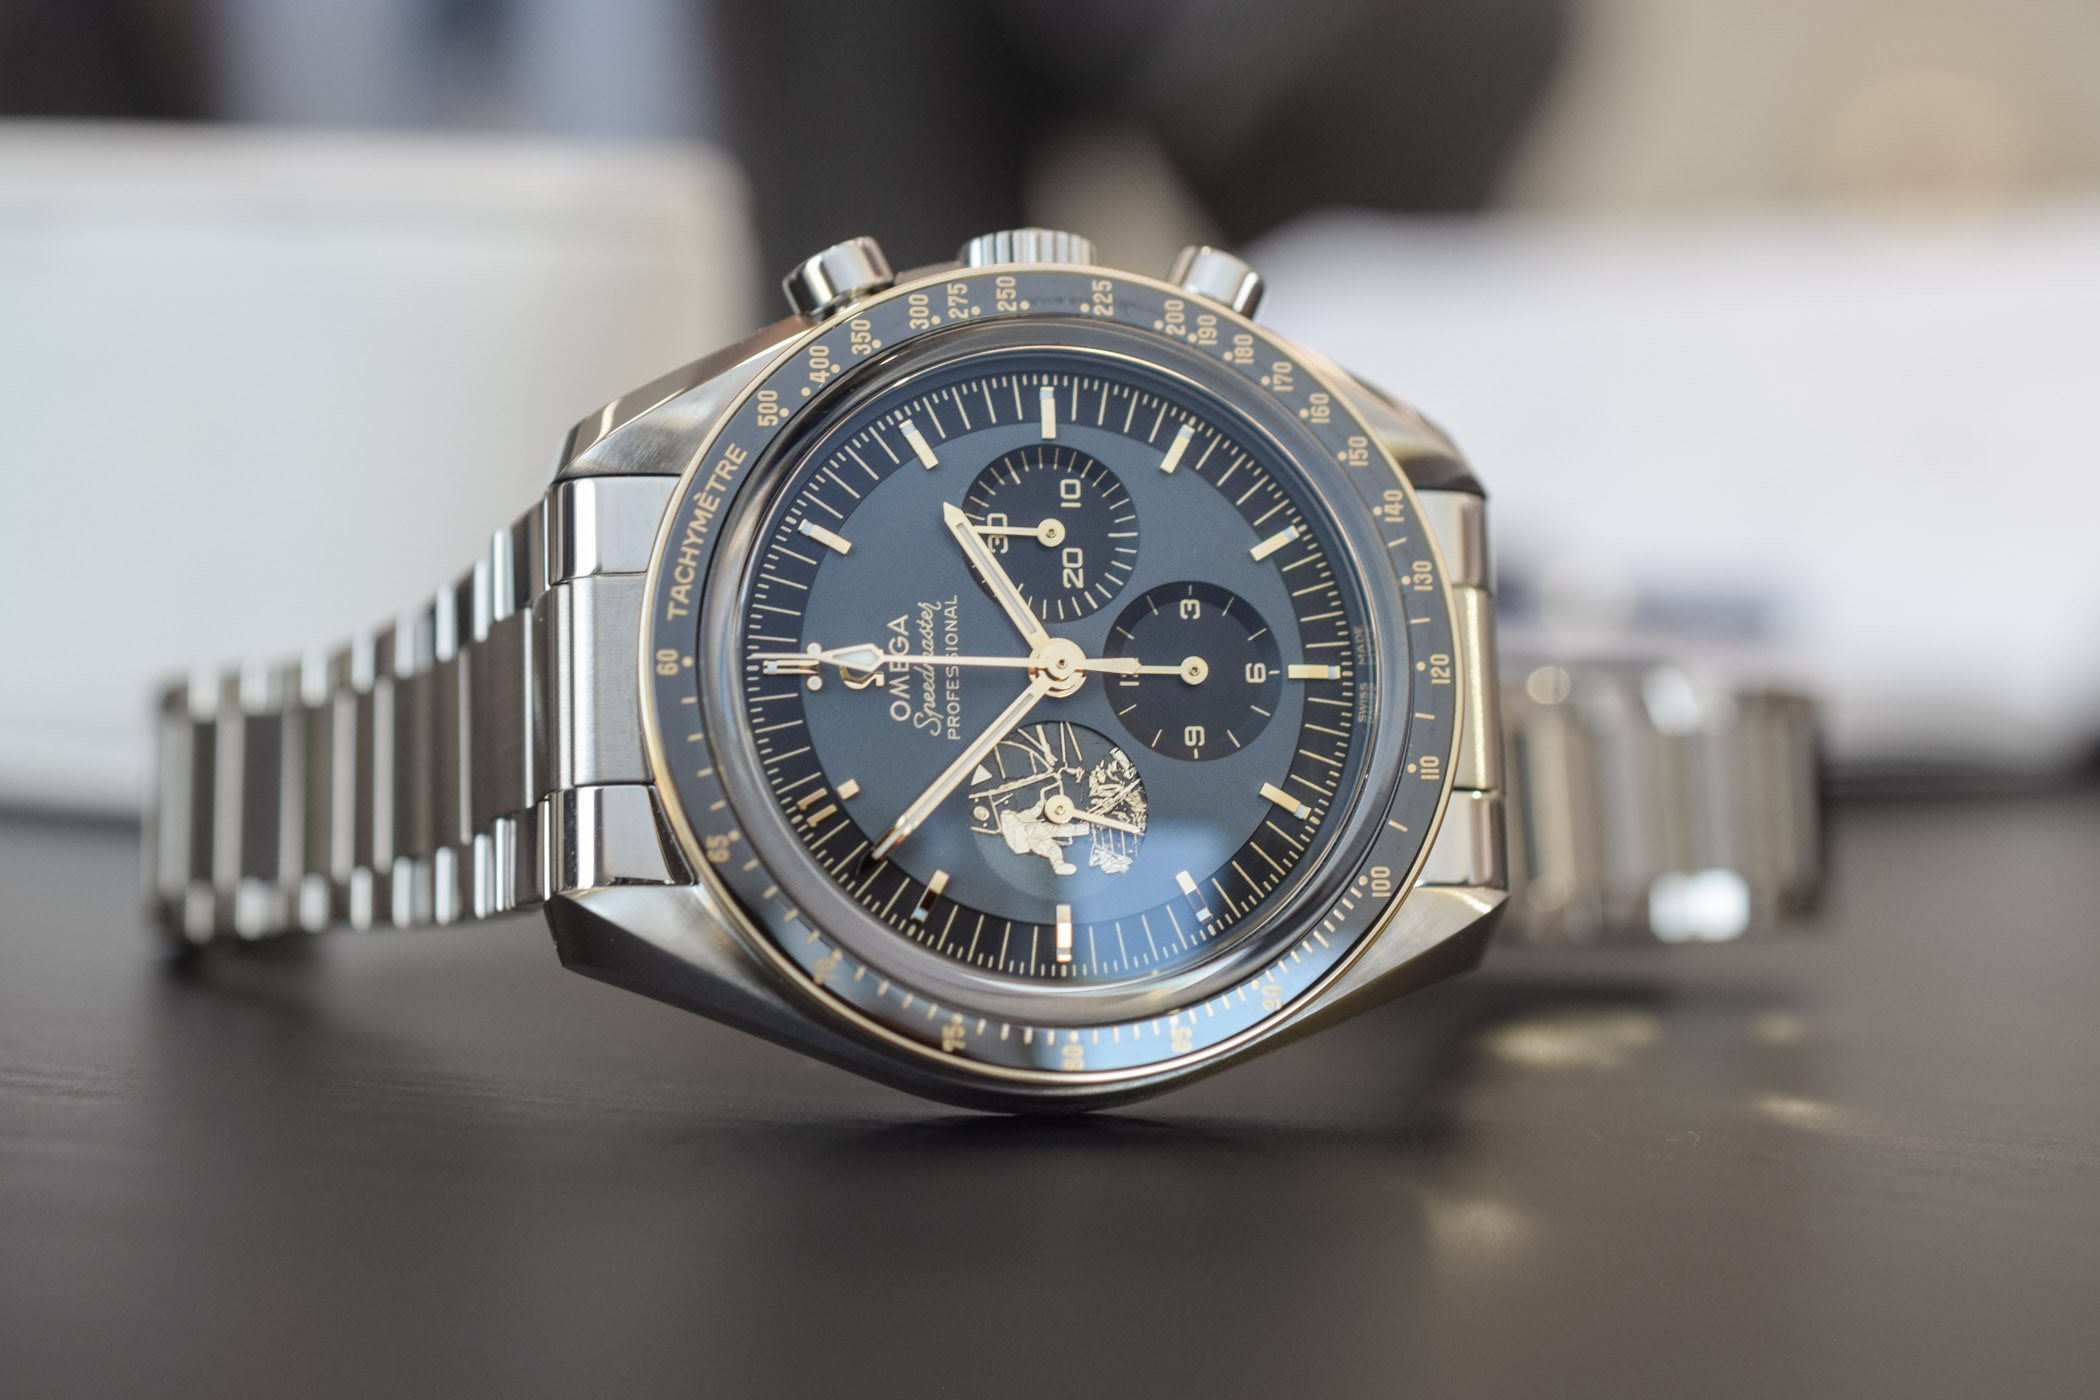 Introducing Omega Speedmaster Apollo 11 50th Anniversary Limited